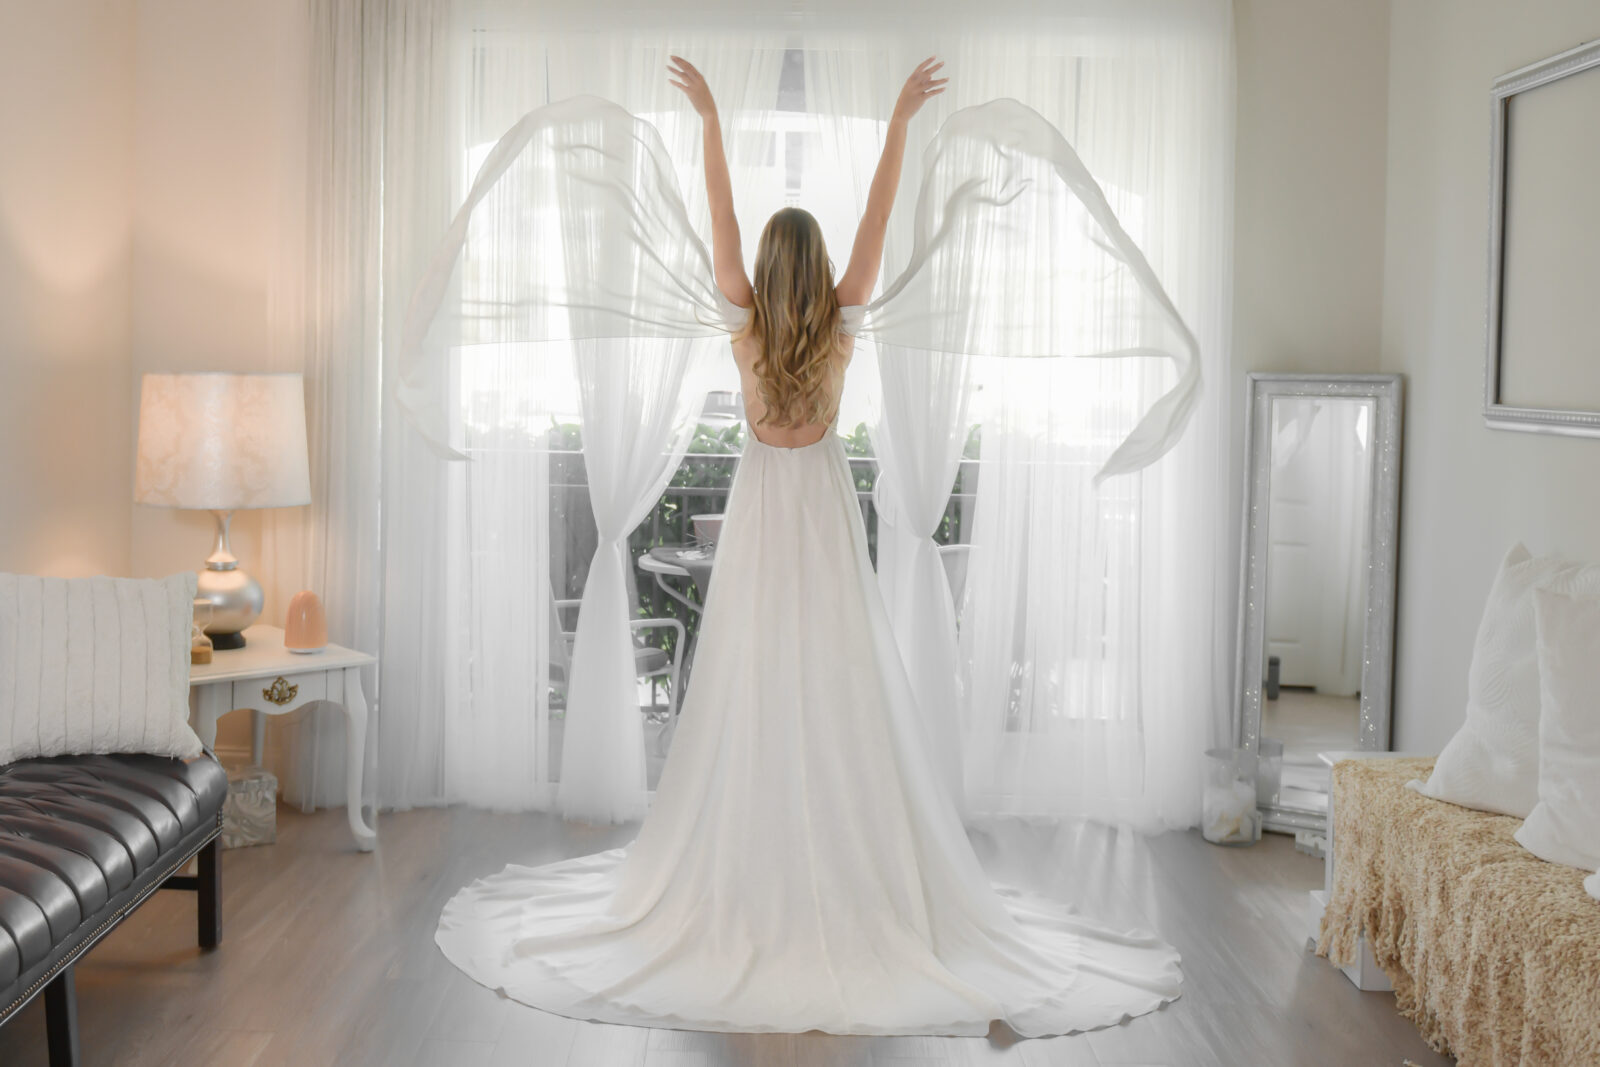 Evening Dresses Wedding Gown, Wedding dress or gown alterations